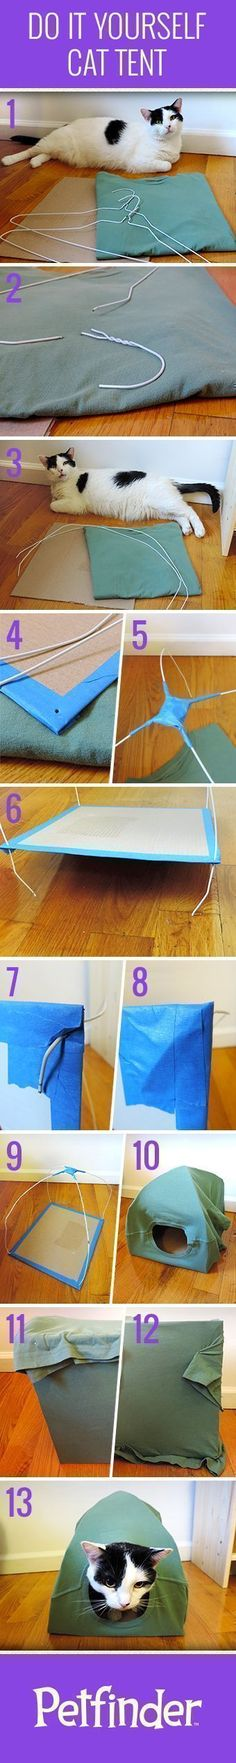 Make your cat a happy camper by putting together this easy DIY project. It just takes a couple of coat hangers, cardboard, tape and an old t-shirt to make this cat tent - perfect for sleep and play! #catsdiytoy #cattentcardboard #diycattent #cattenttshirt #diycattentplays #camperprojects #diycattentprojects #camperdiyprojects #diycattenttshirts